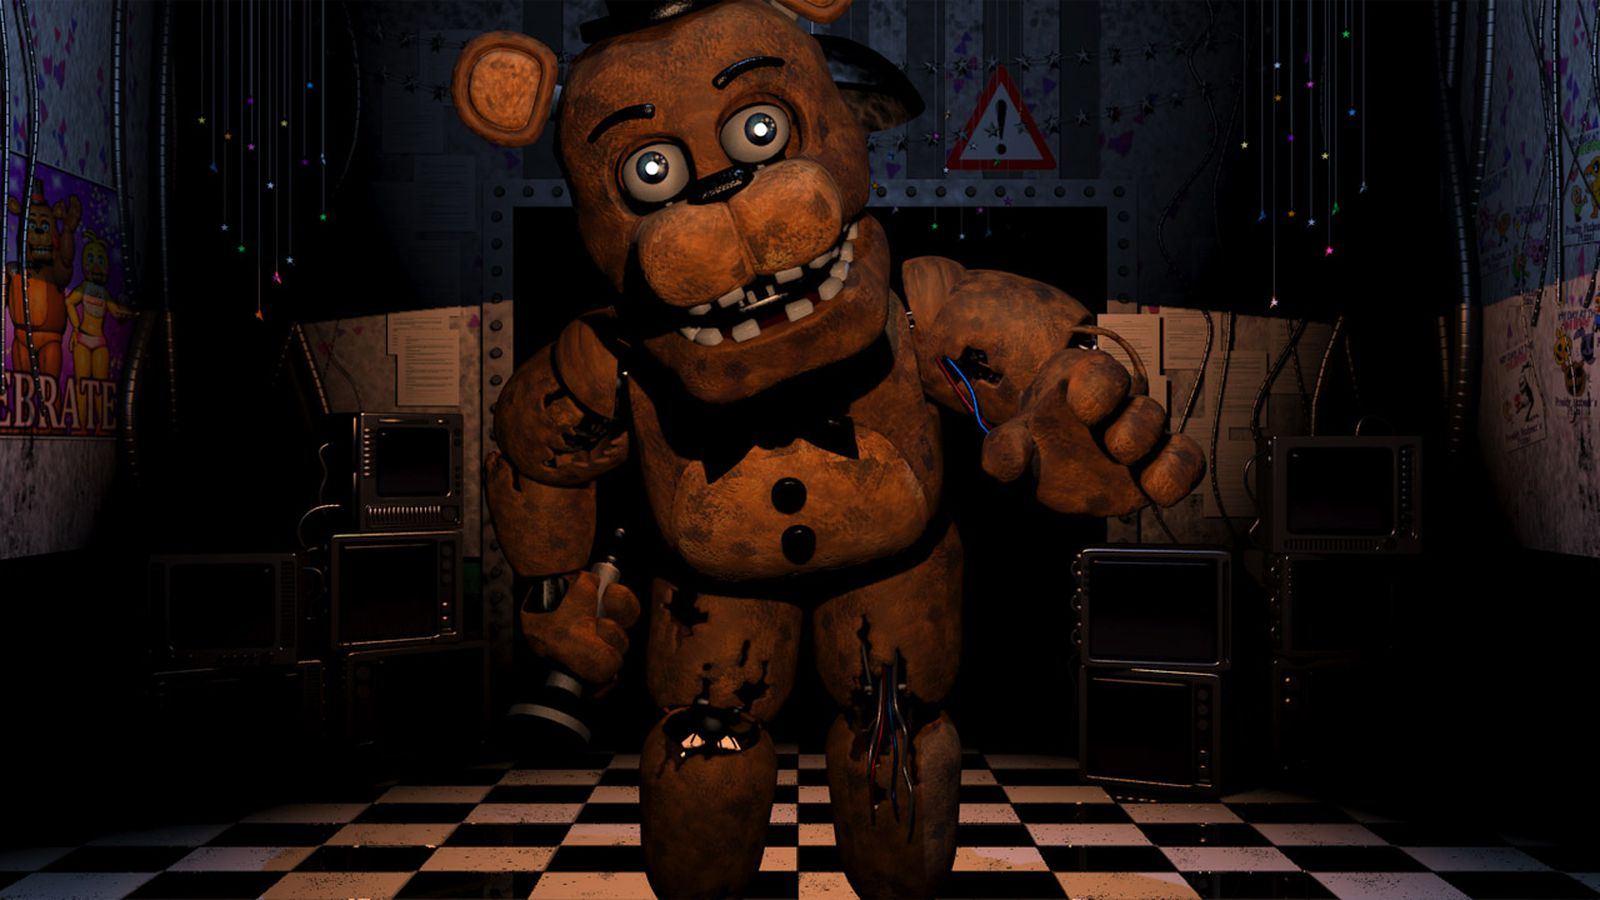 Five Nights at Freddy 39 s movie in the works at Warner Bros